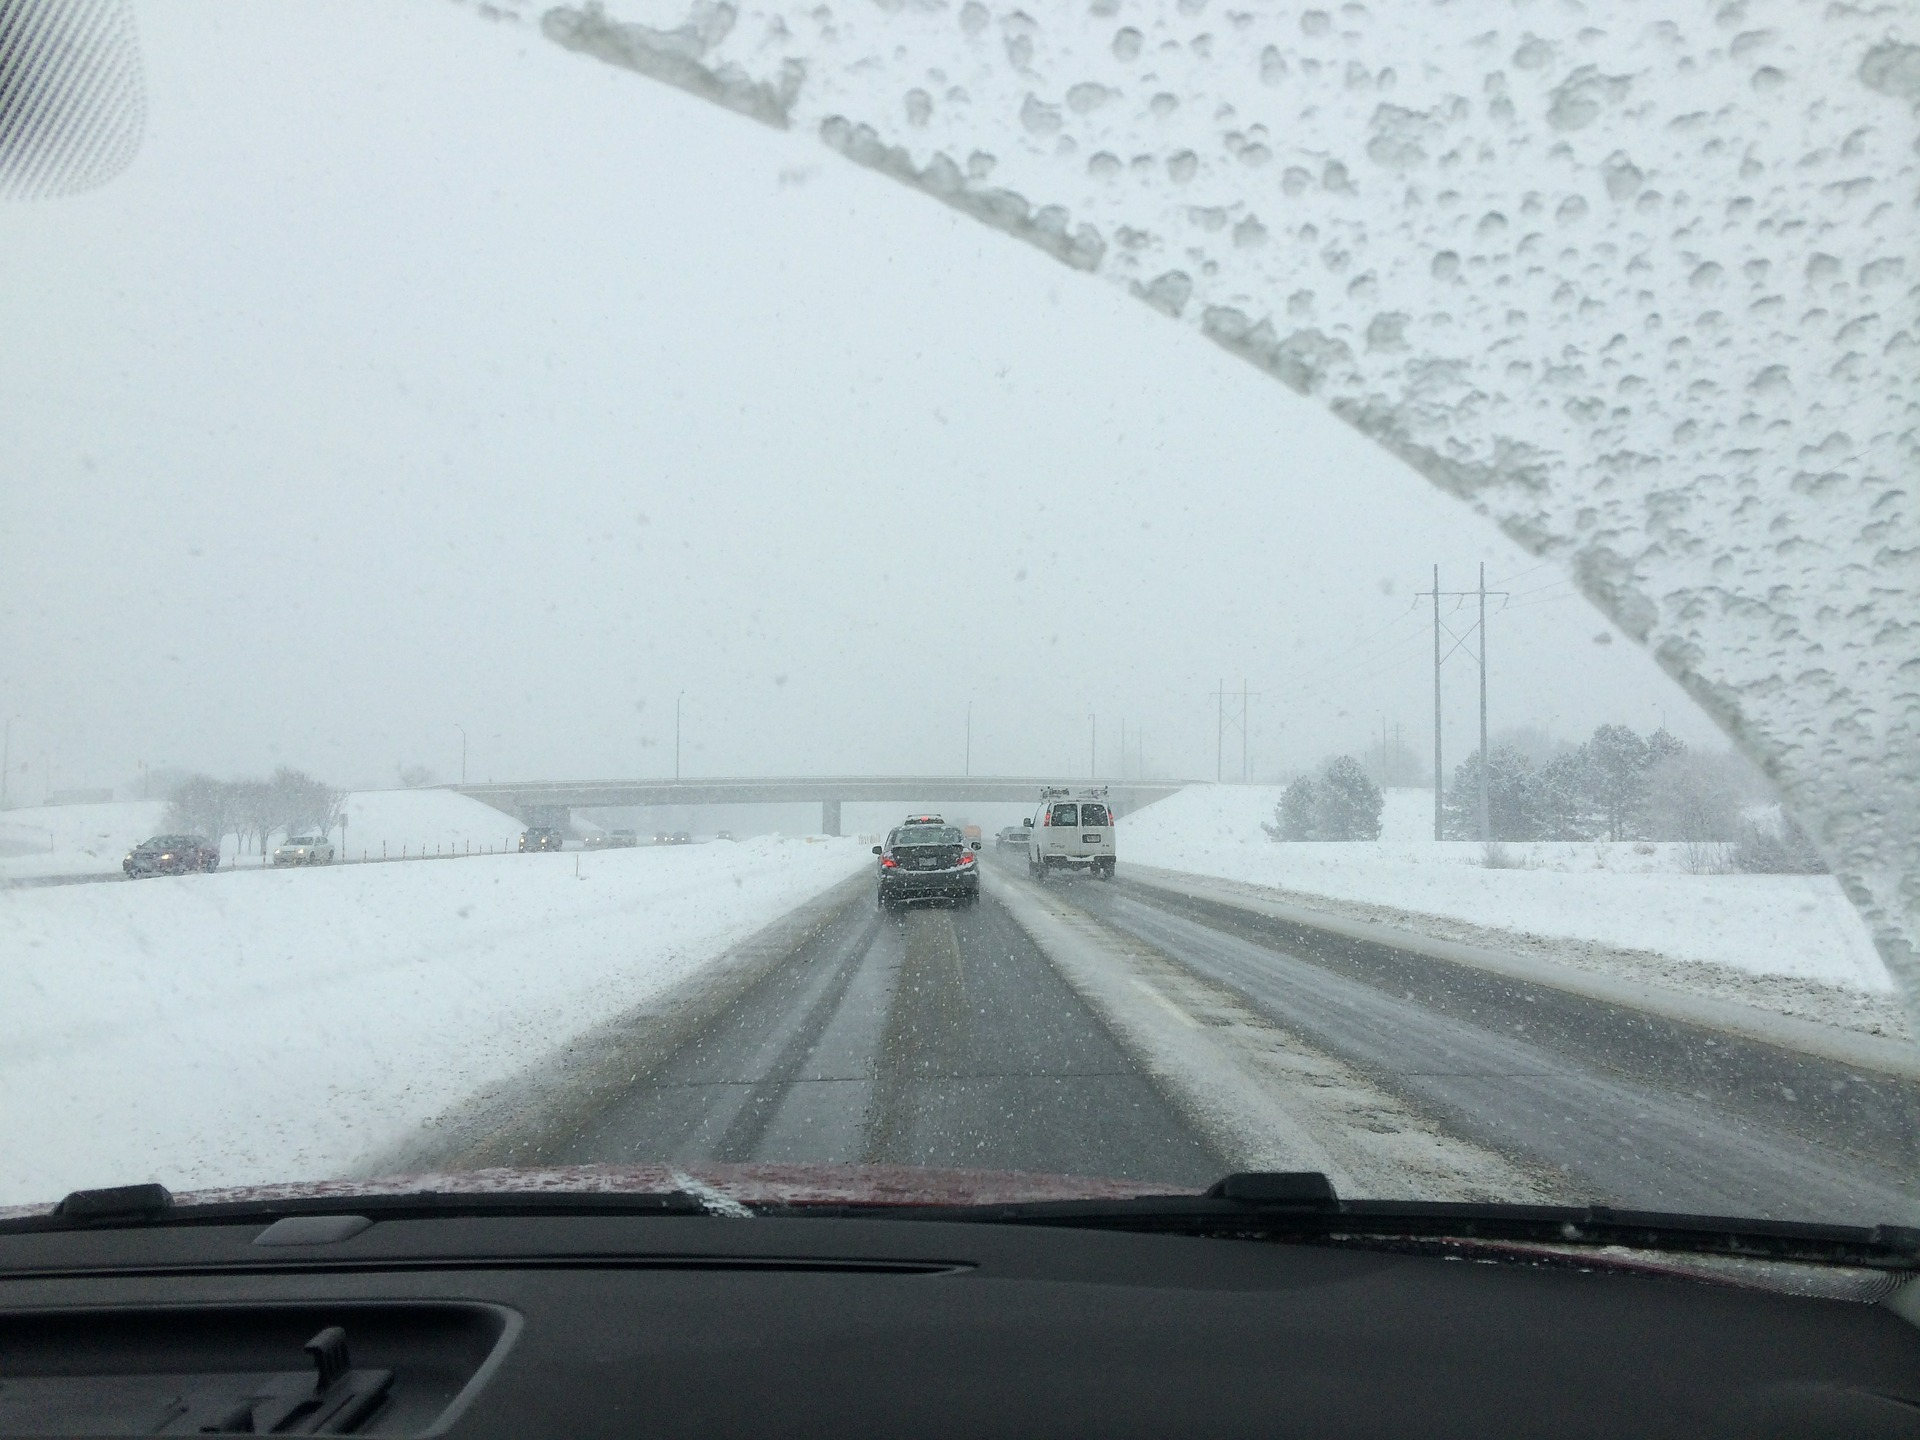 Winter Travel Tips to Help You Stay Safe Keep your windshield clear